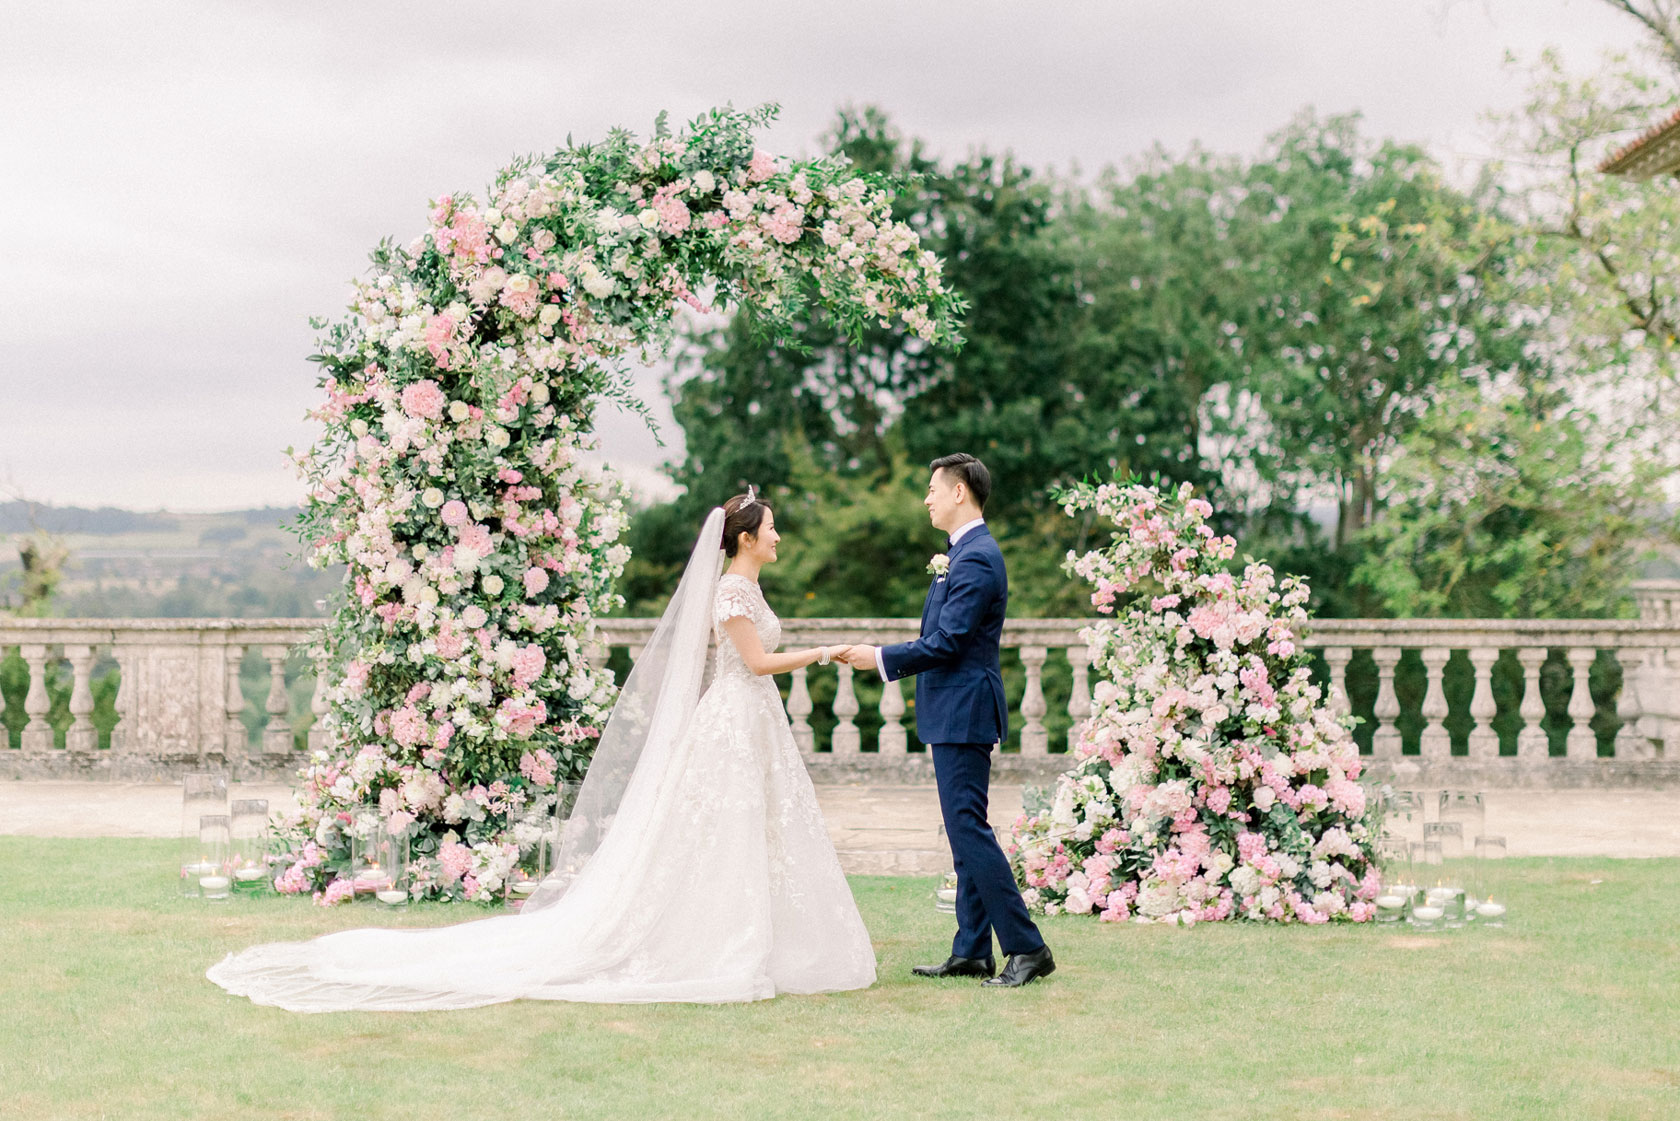 a candlelit wedding in a marquee with hanging florals